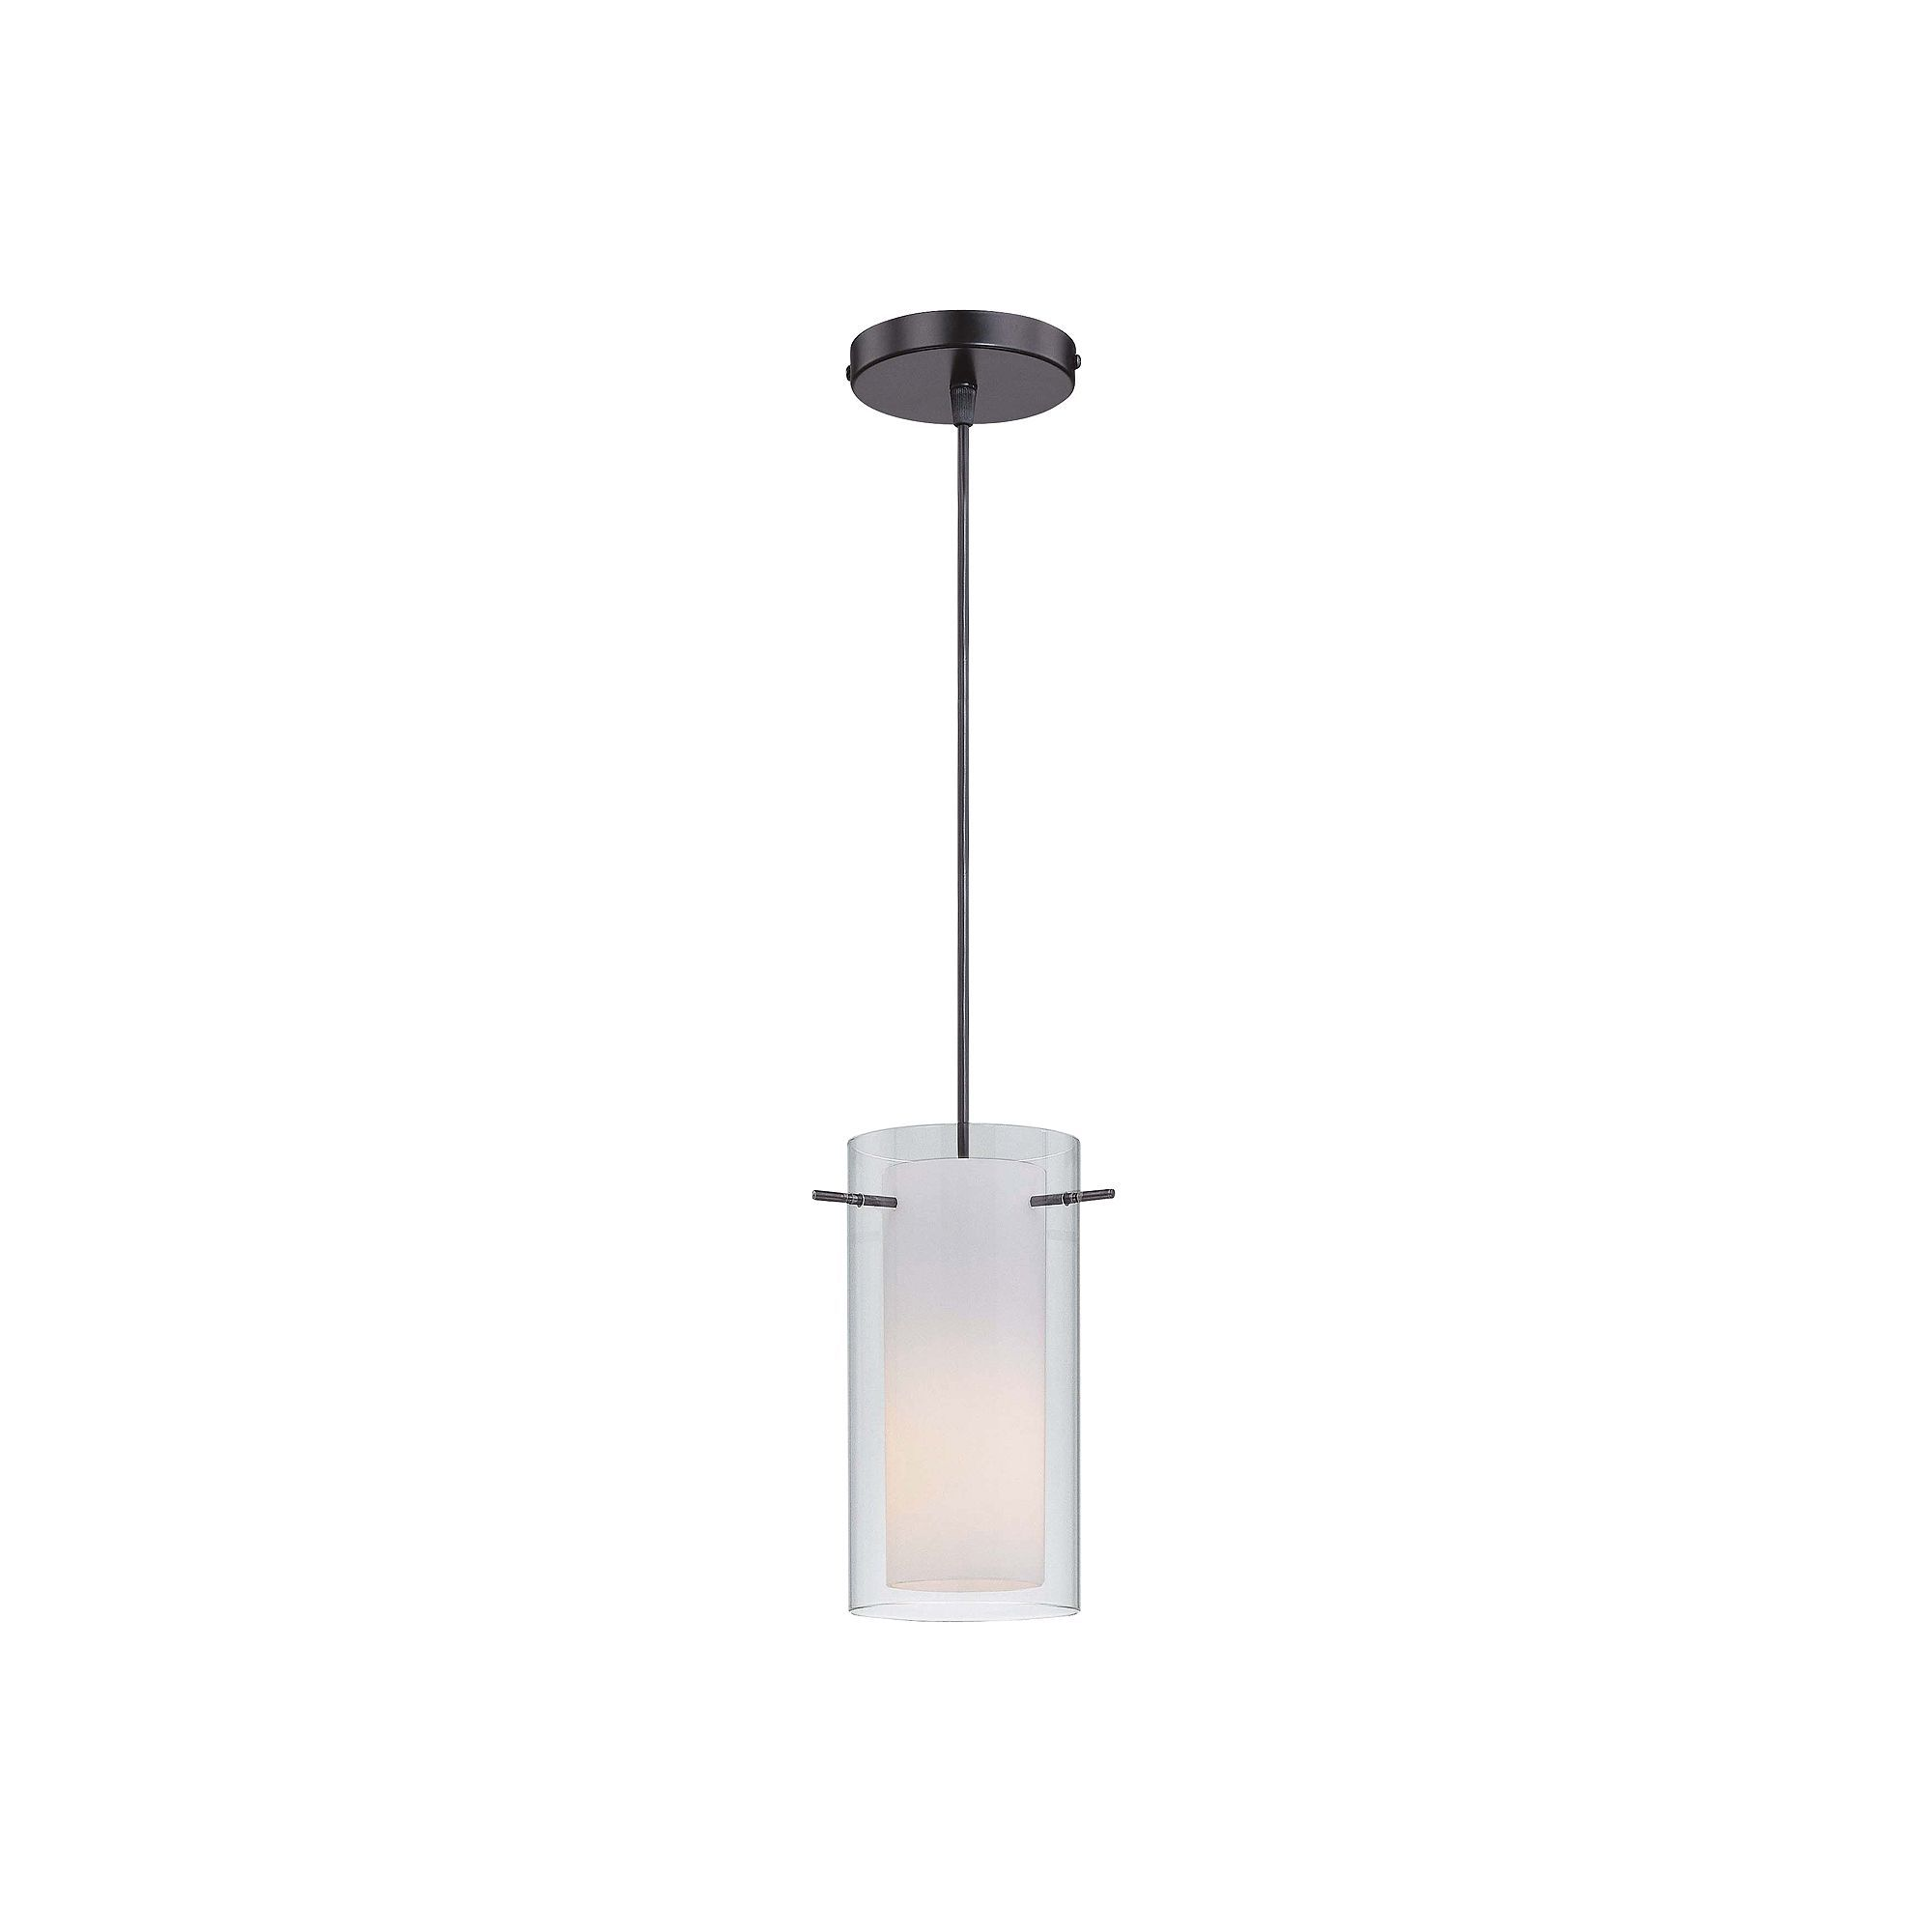 Jaden skinny pendant lamp white pendant lamps pendants and products